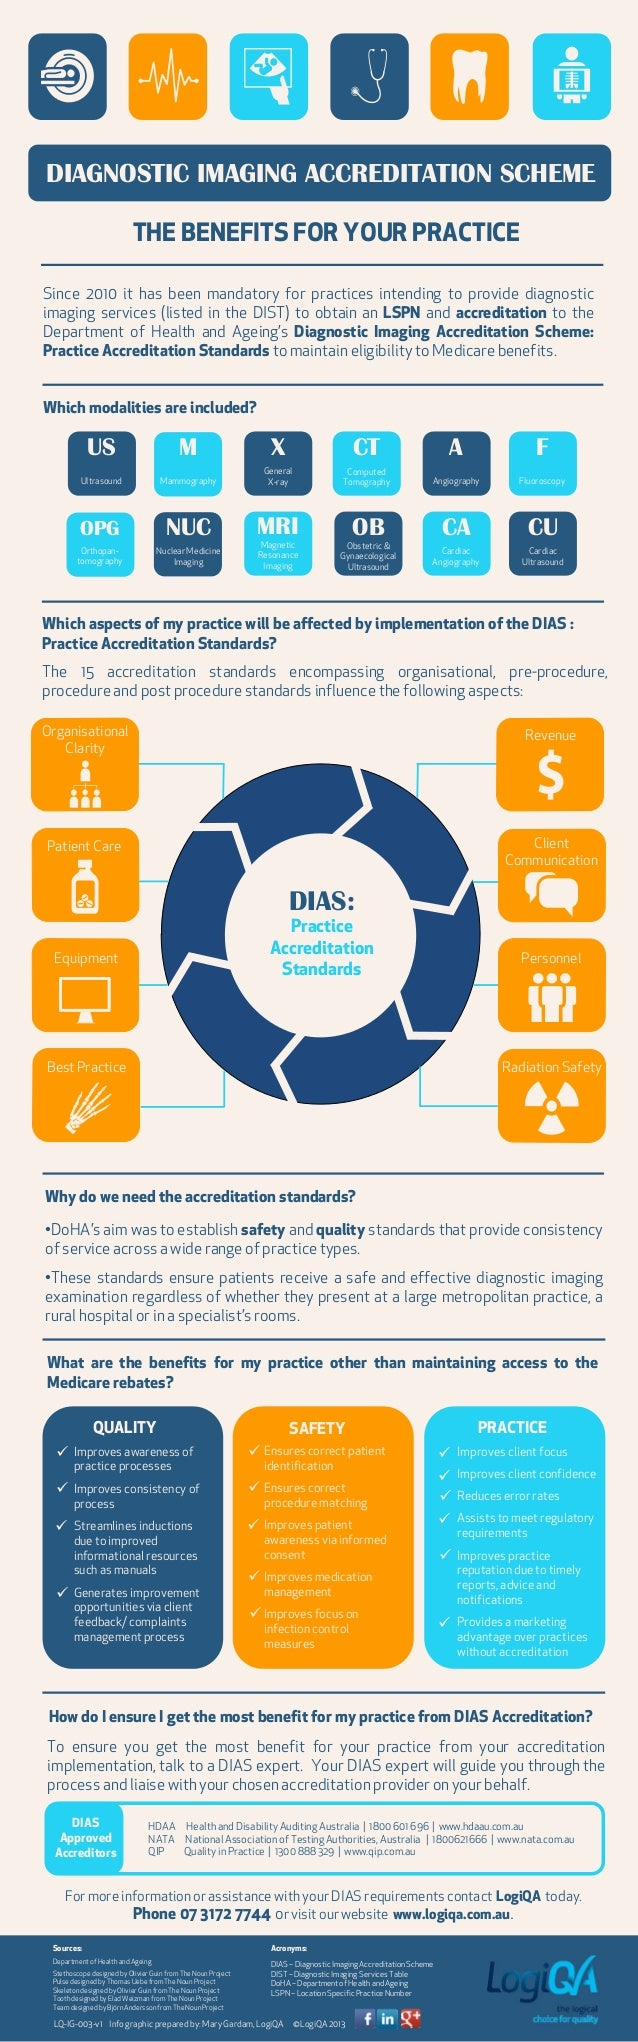 DIASApprovedAccreditorsTo ensure you get the most benefit for your practice from your accreditationimplementation, talk to...